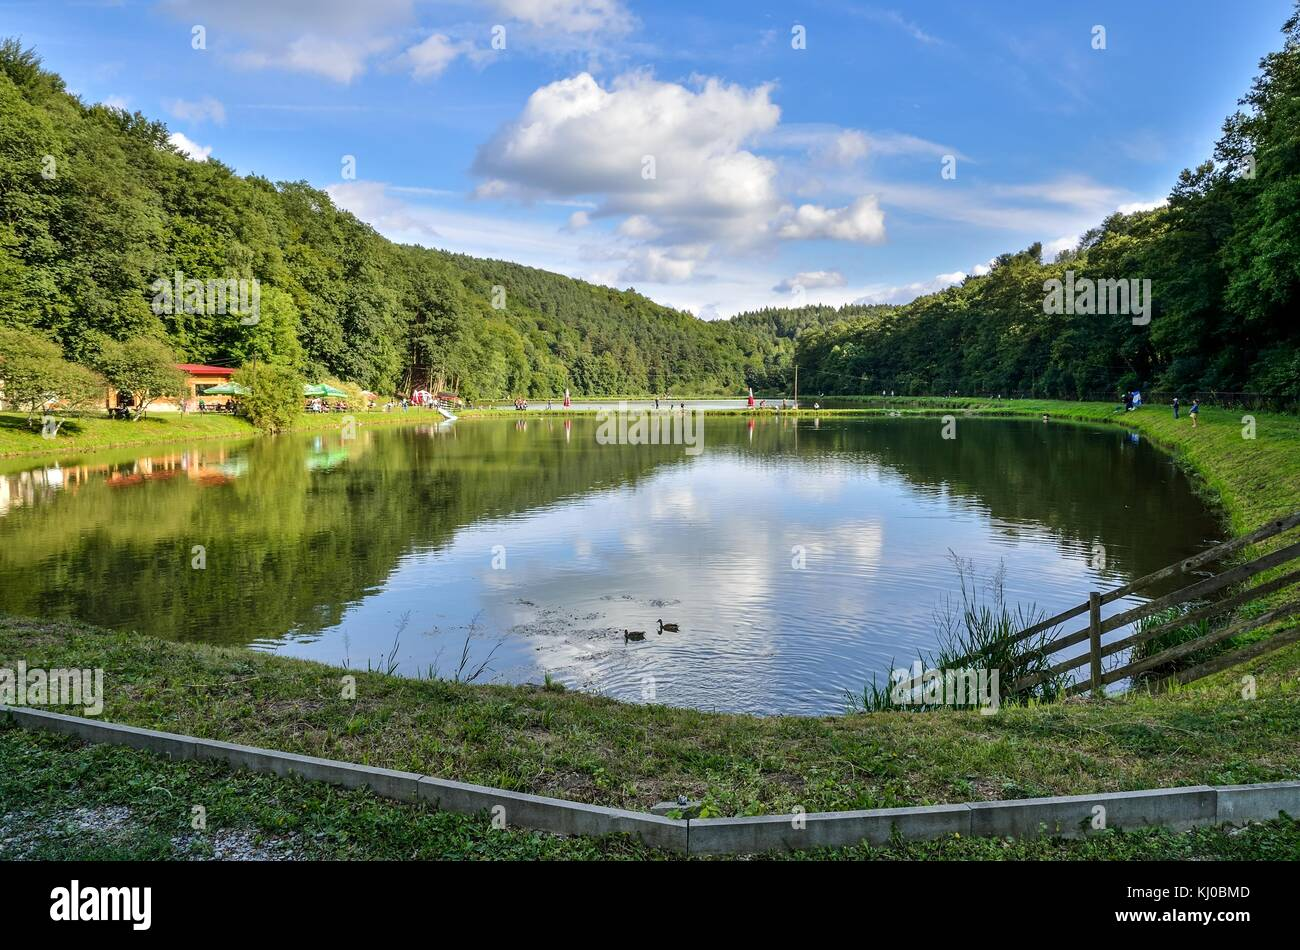 BEDKOWSKA VALLEY, POLAND - AUGUST 13, 2017: Tourists on the pond in the Bedkowska Valley, Poland. - Stock Image